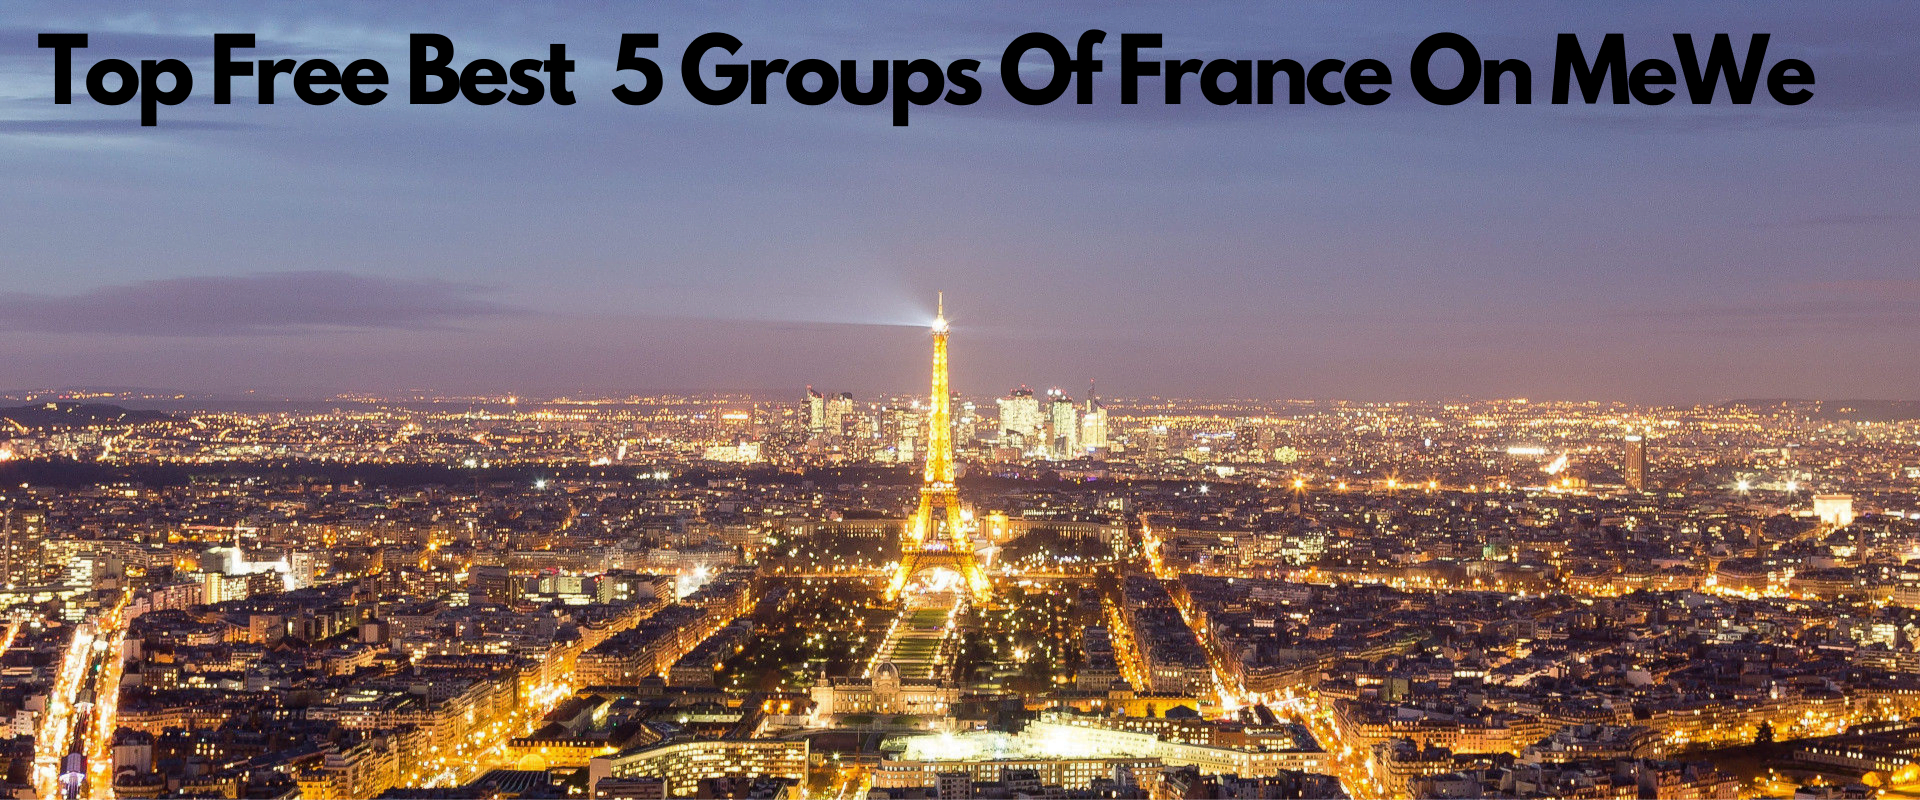 Top Free Best 5 Groups Of France On MeWe